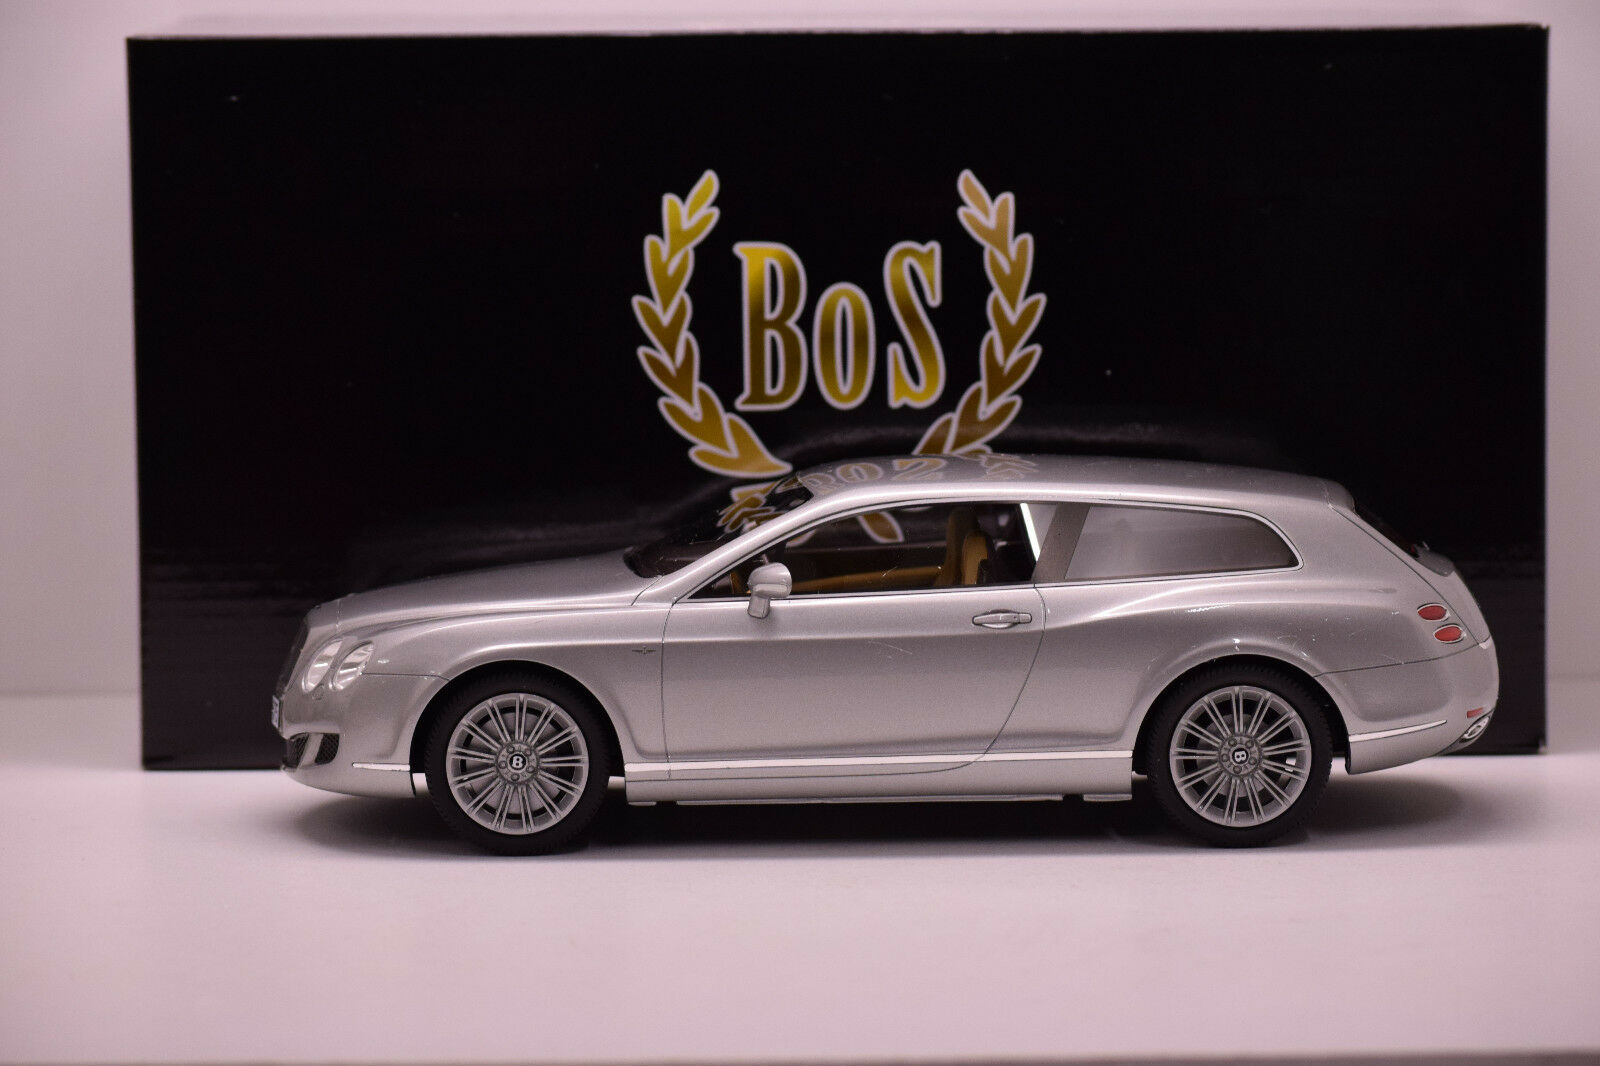 Bentley flying star touring bos 1 18 new in box